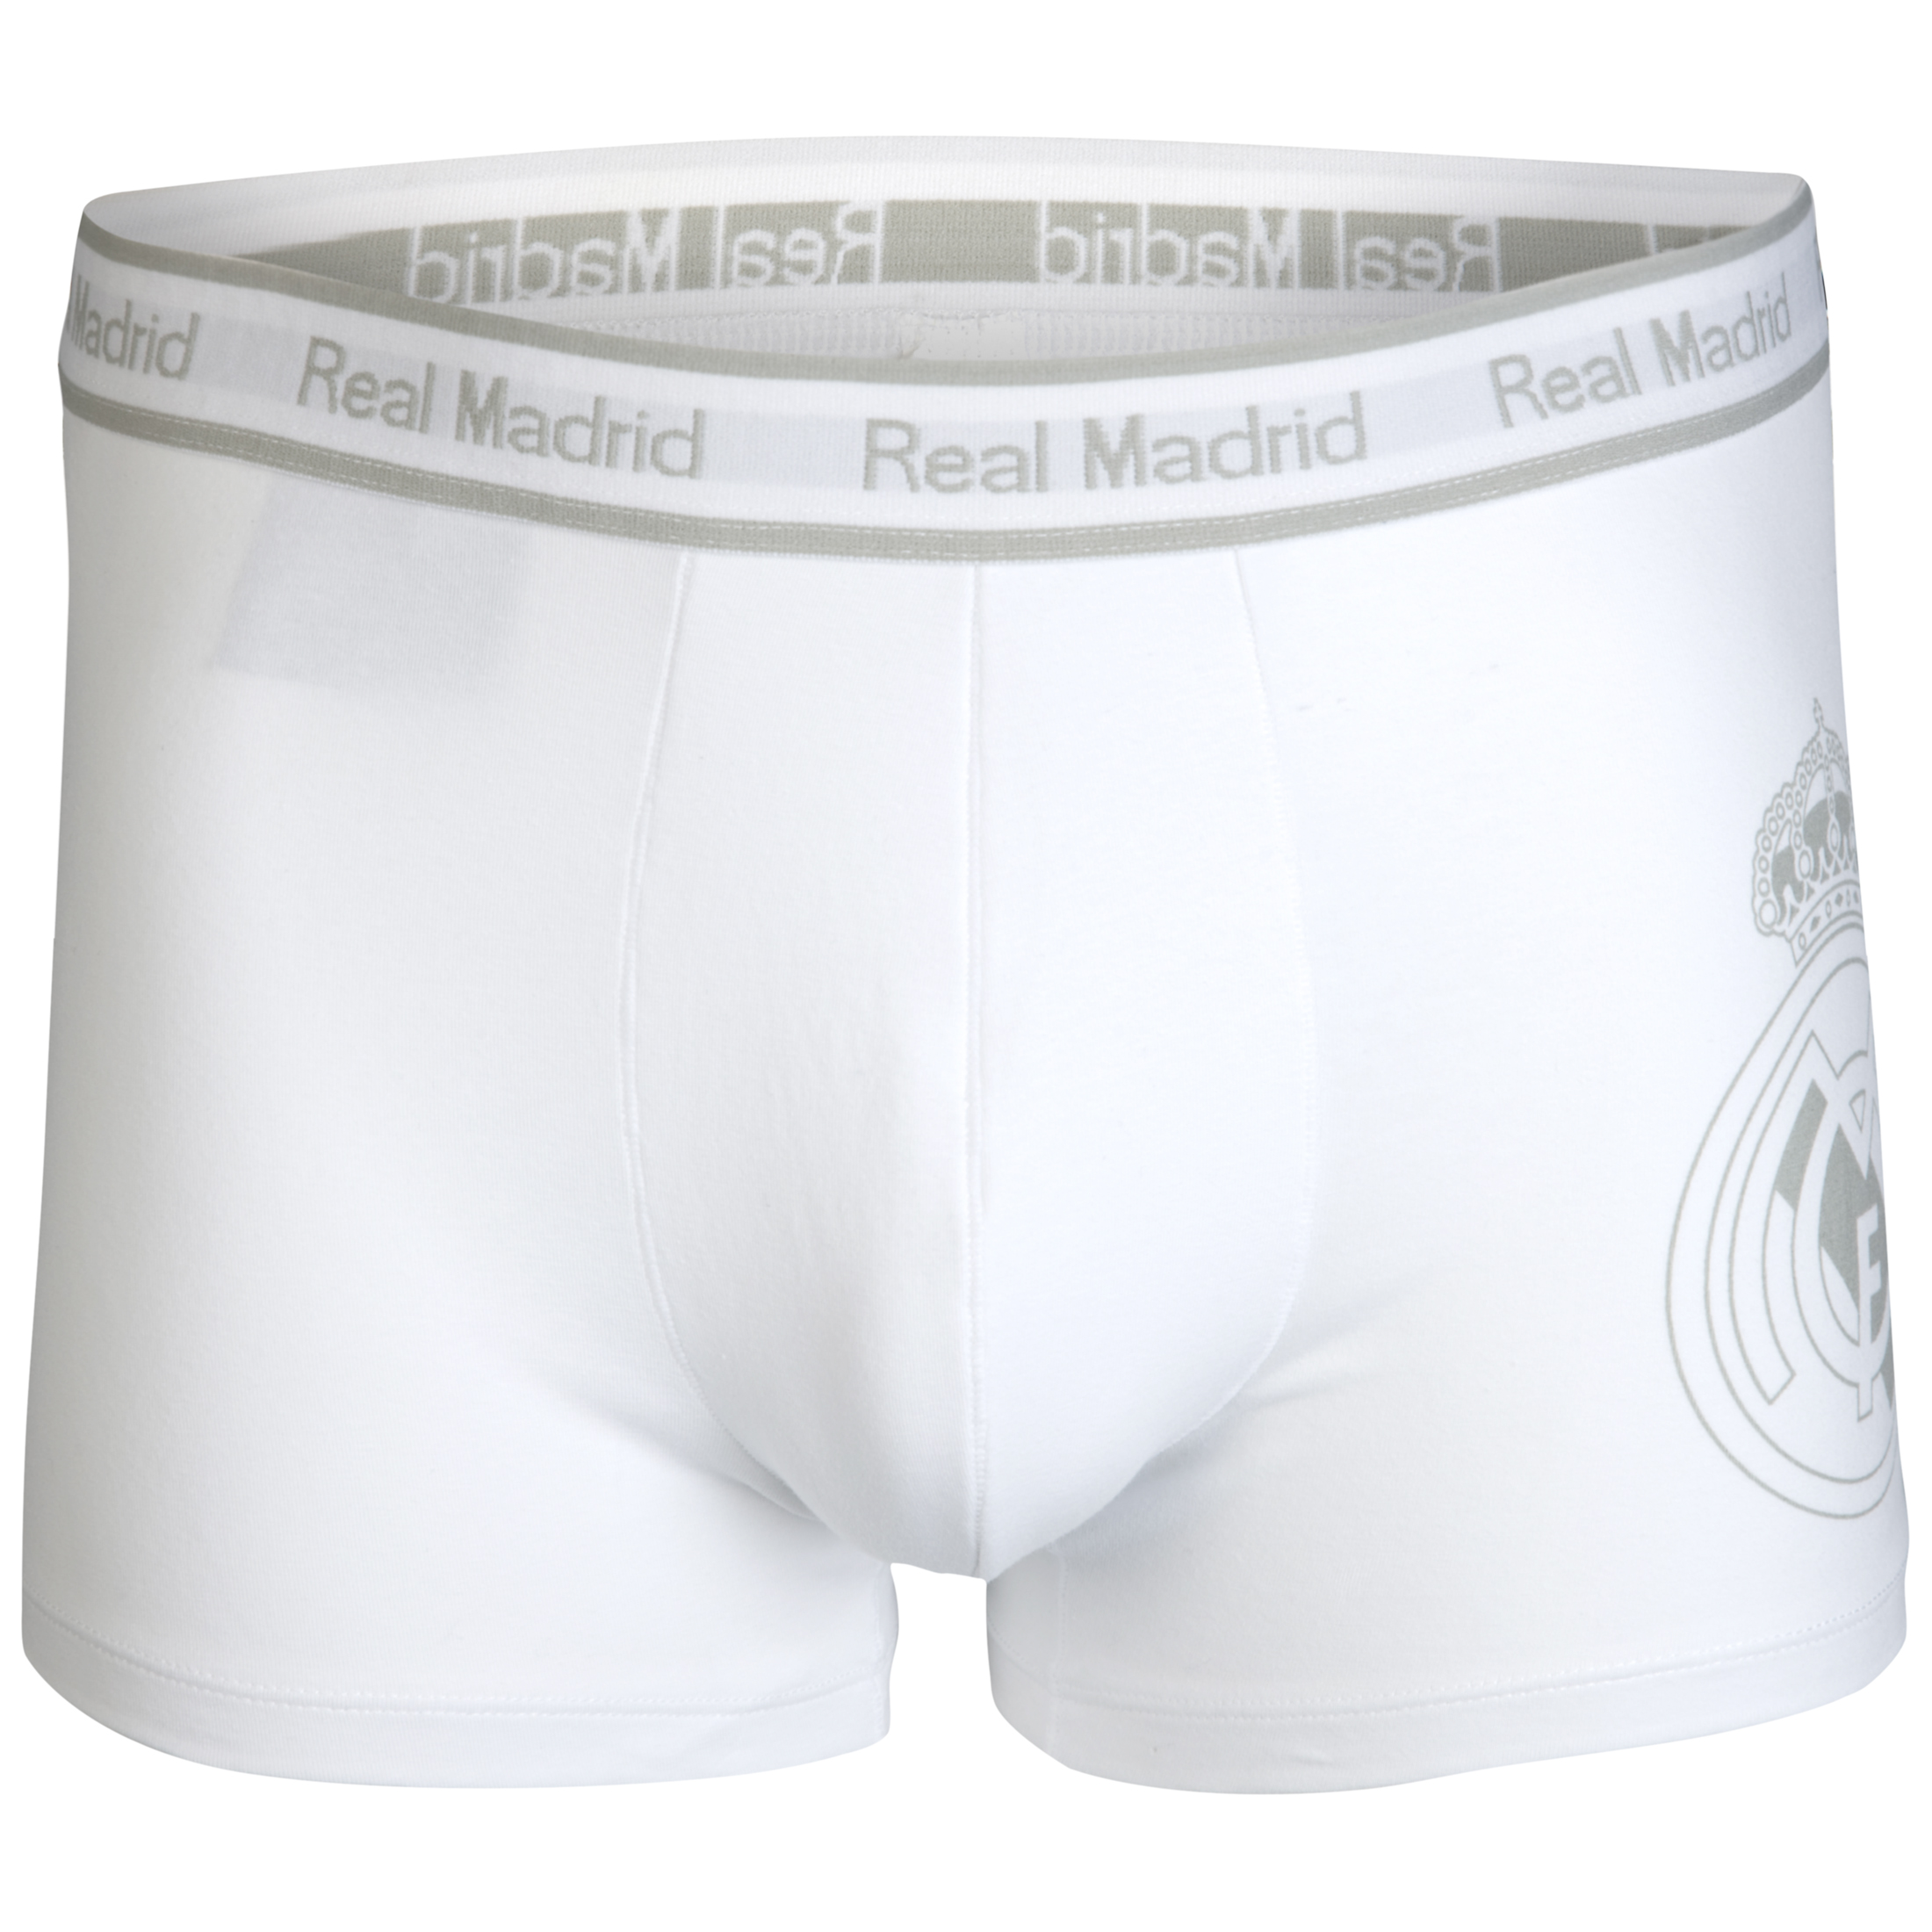 Real Madrid Boxers - White